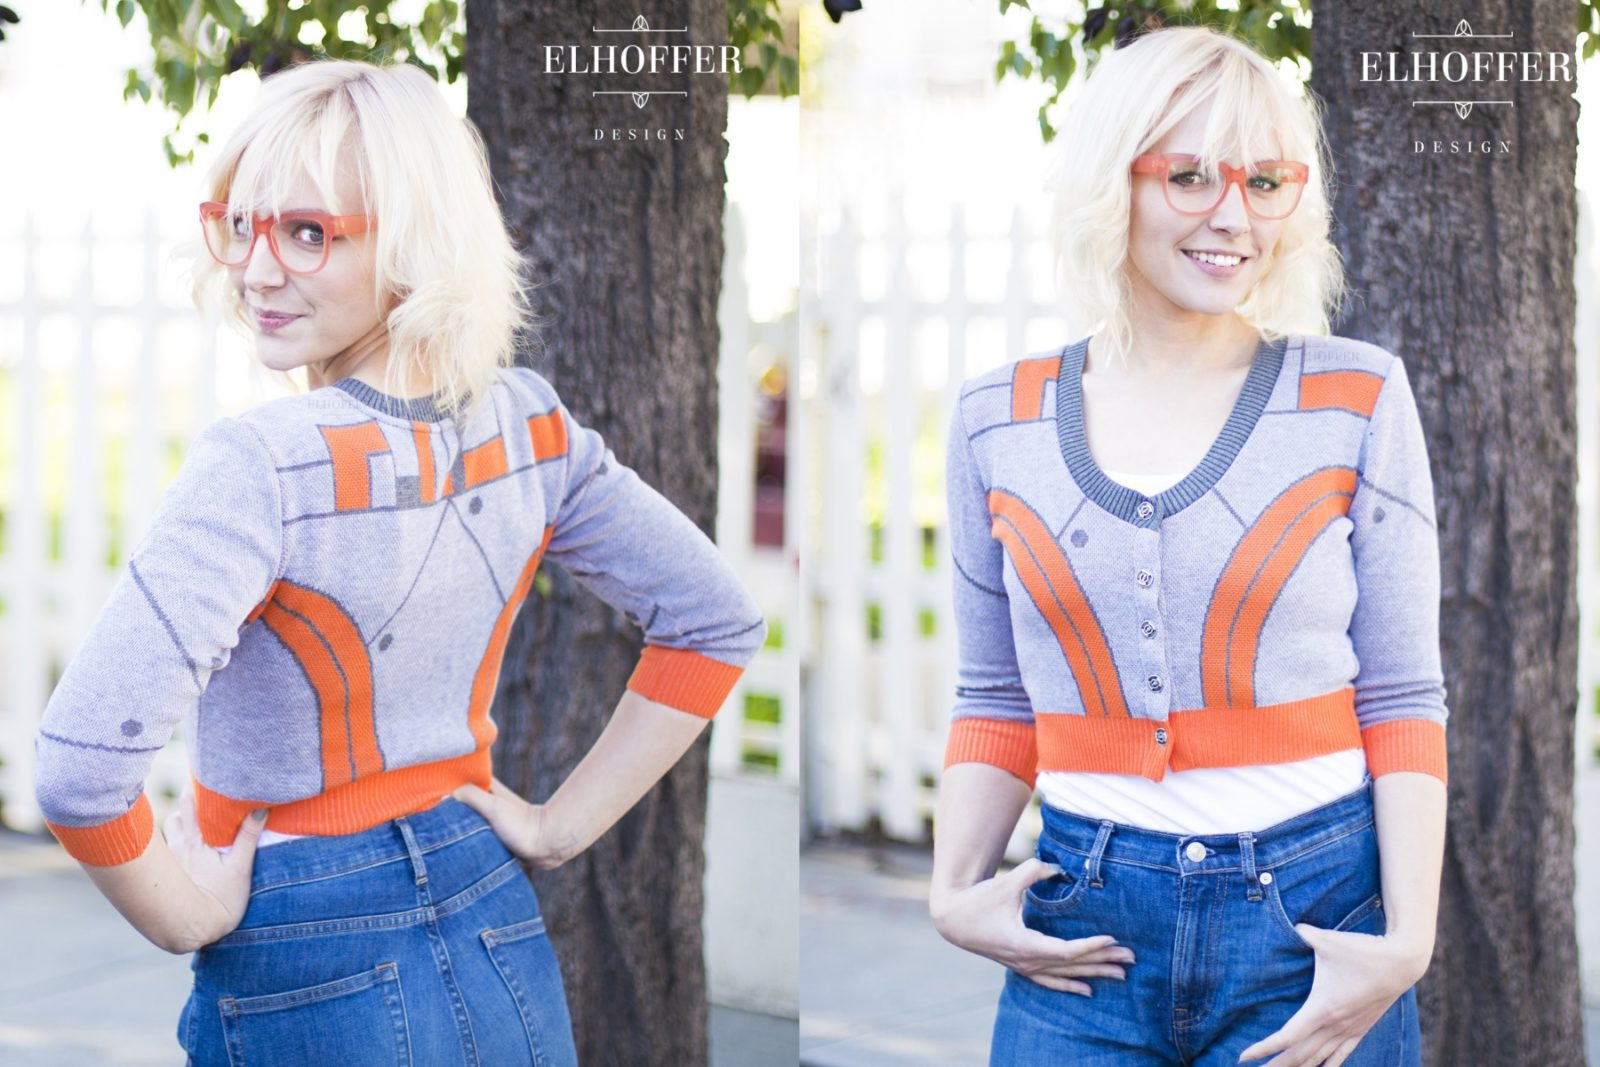 Elhoffer Design BB-8 Inspired Cardigan